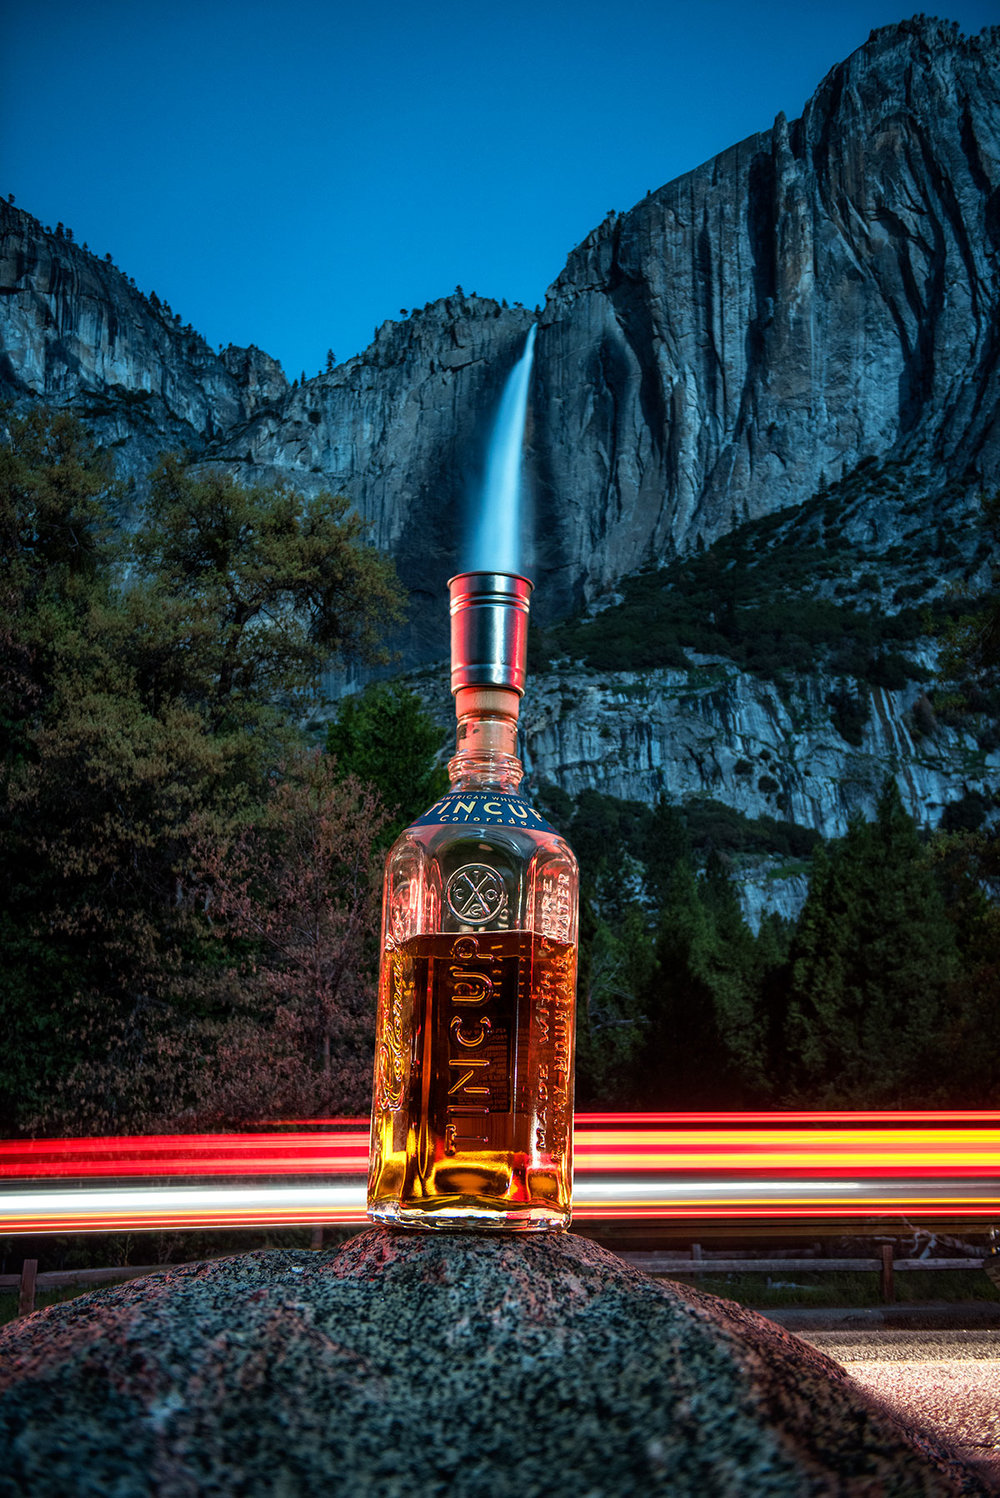 austin-trigg-whiskey-yosemite-product-TINCUP-Valley-Floor-Yosemite-Falls-long-exposure-product.jpg